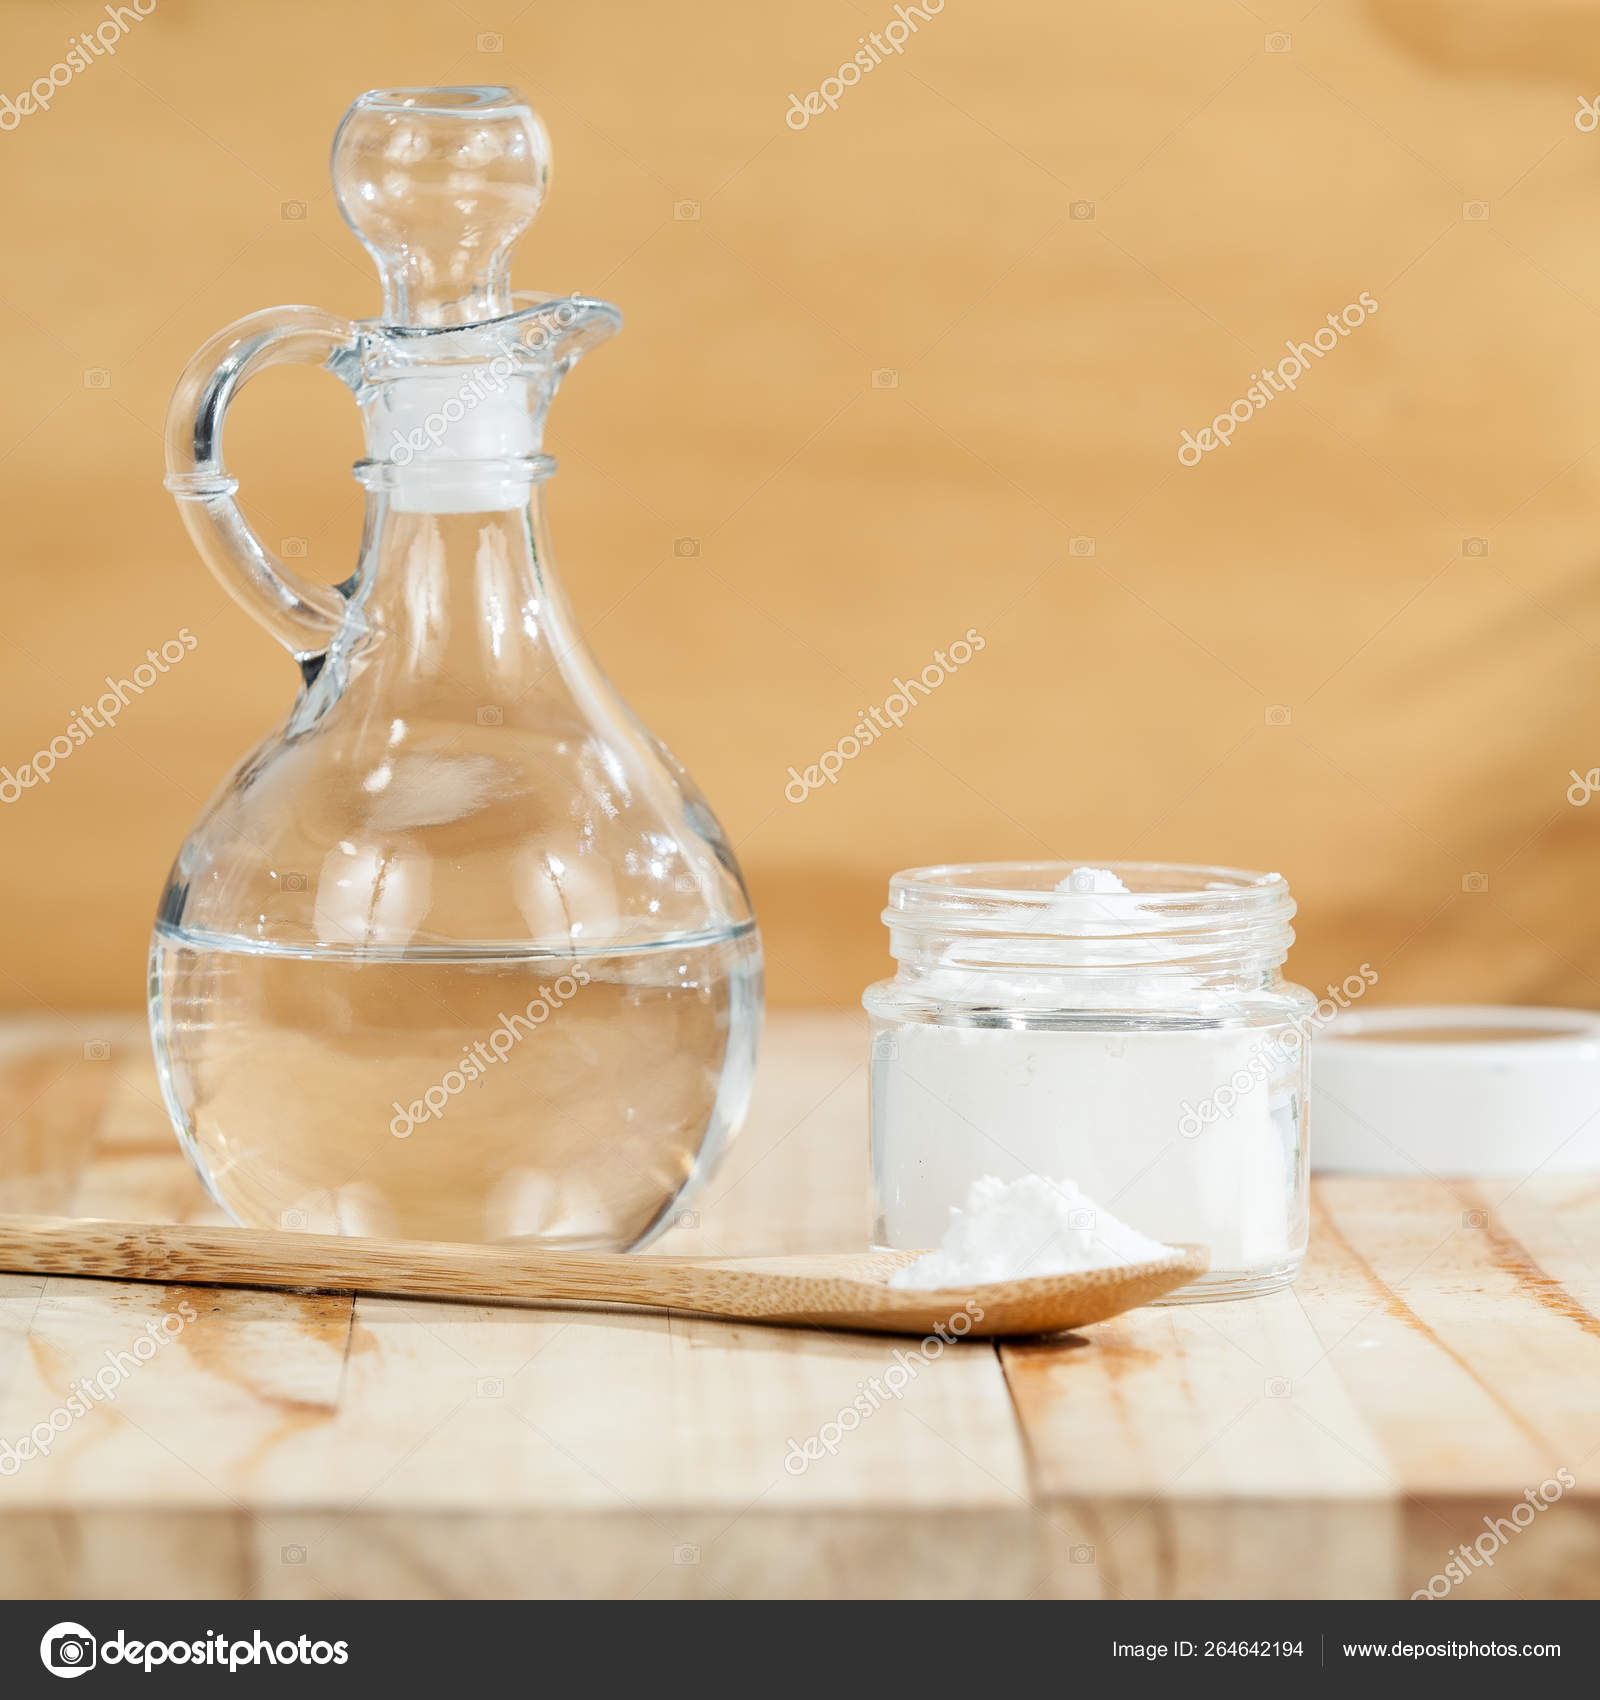 Baking Soda Sodium Bicarbonate Vinegar Wooden Background